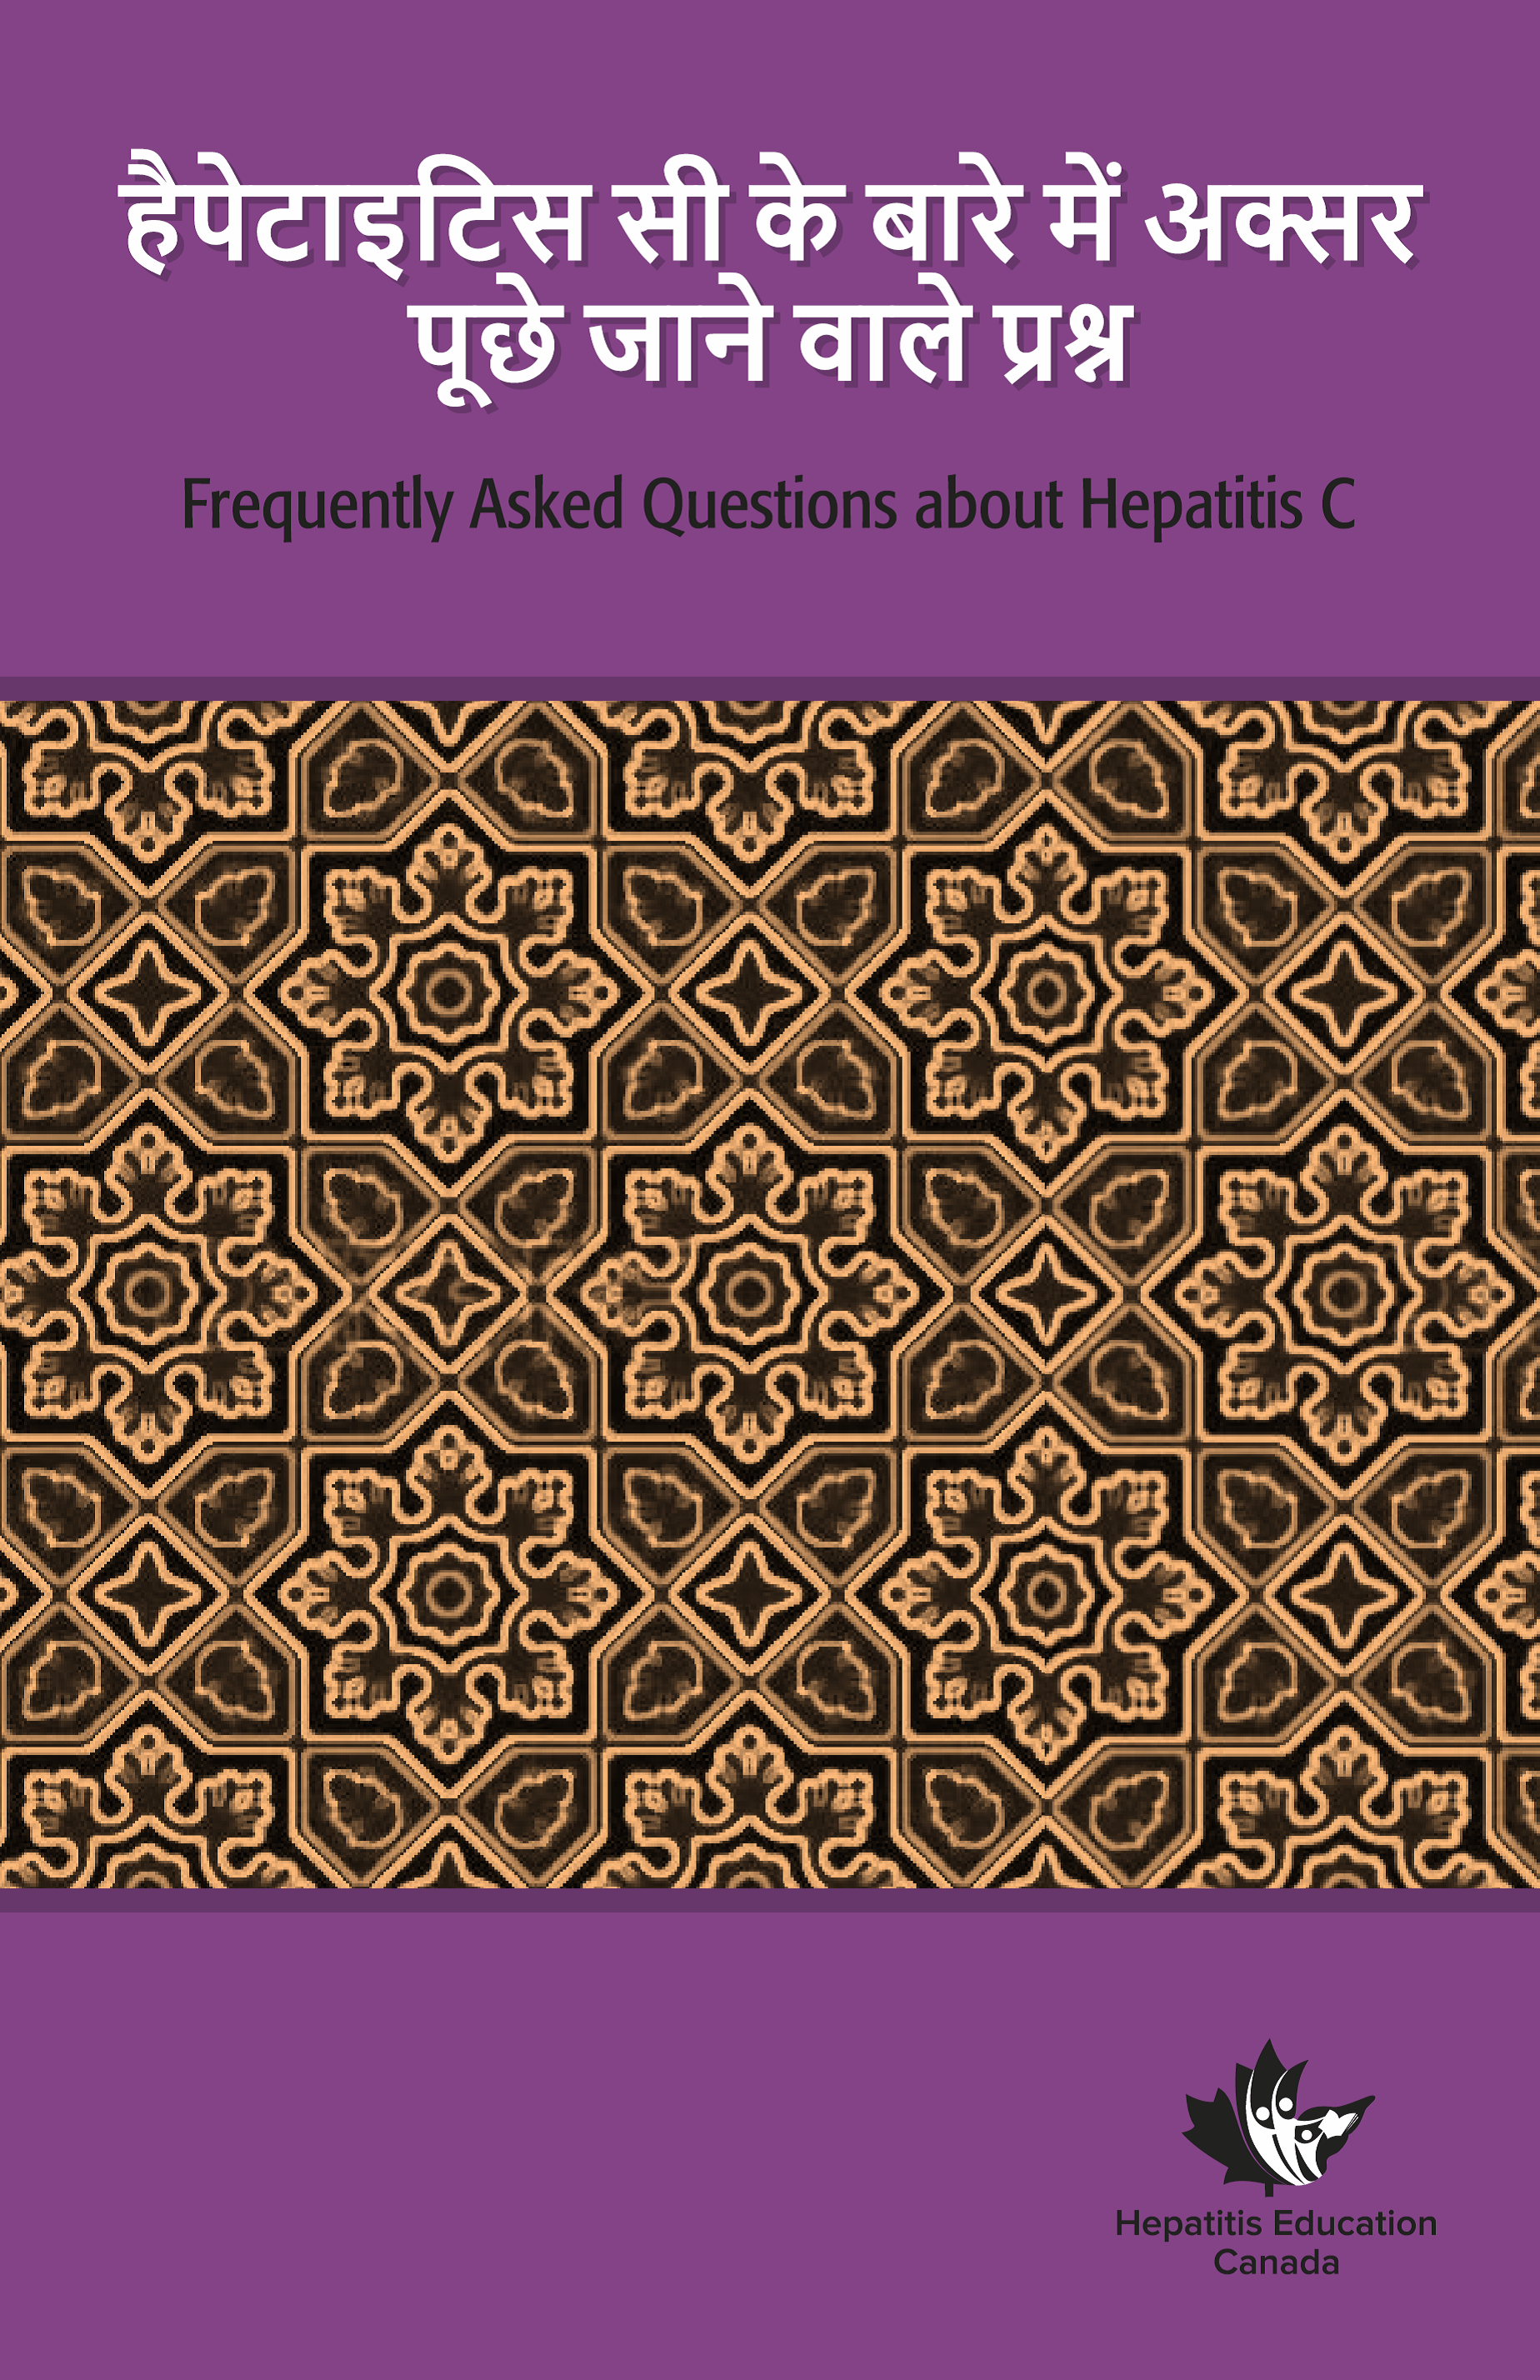 Frequently Asked Questions about Hepatitis C-Hindi-016-july-15.pdf